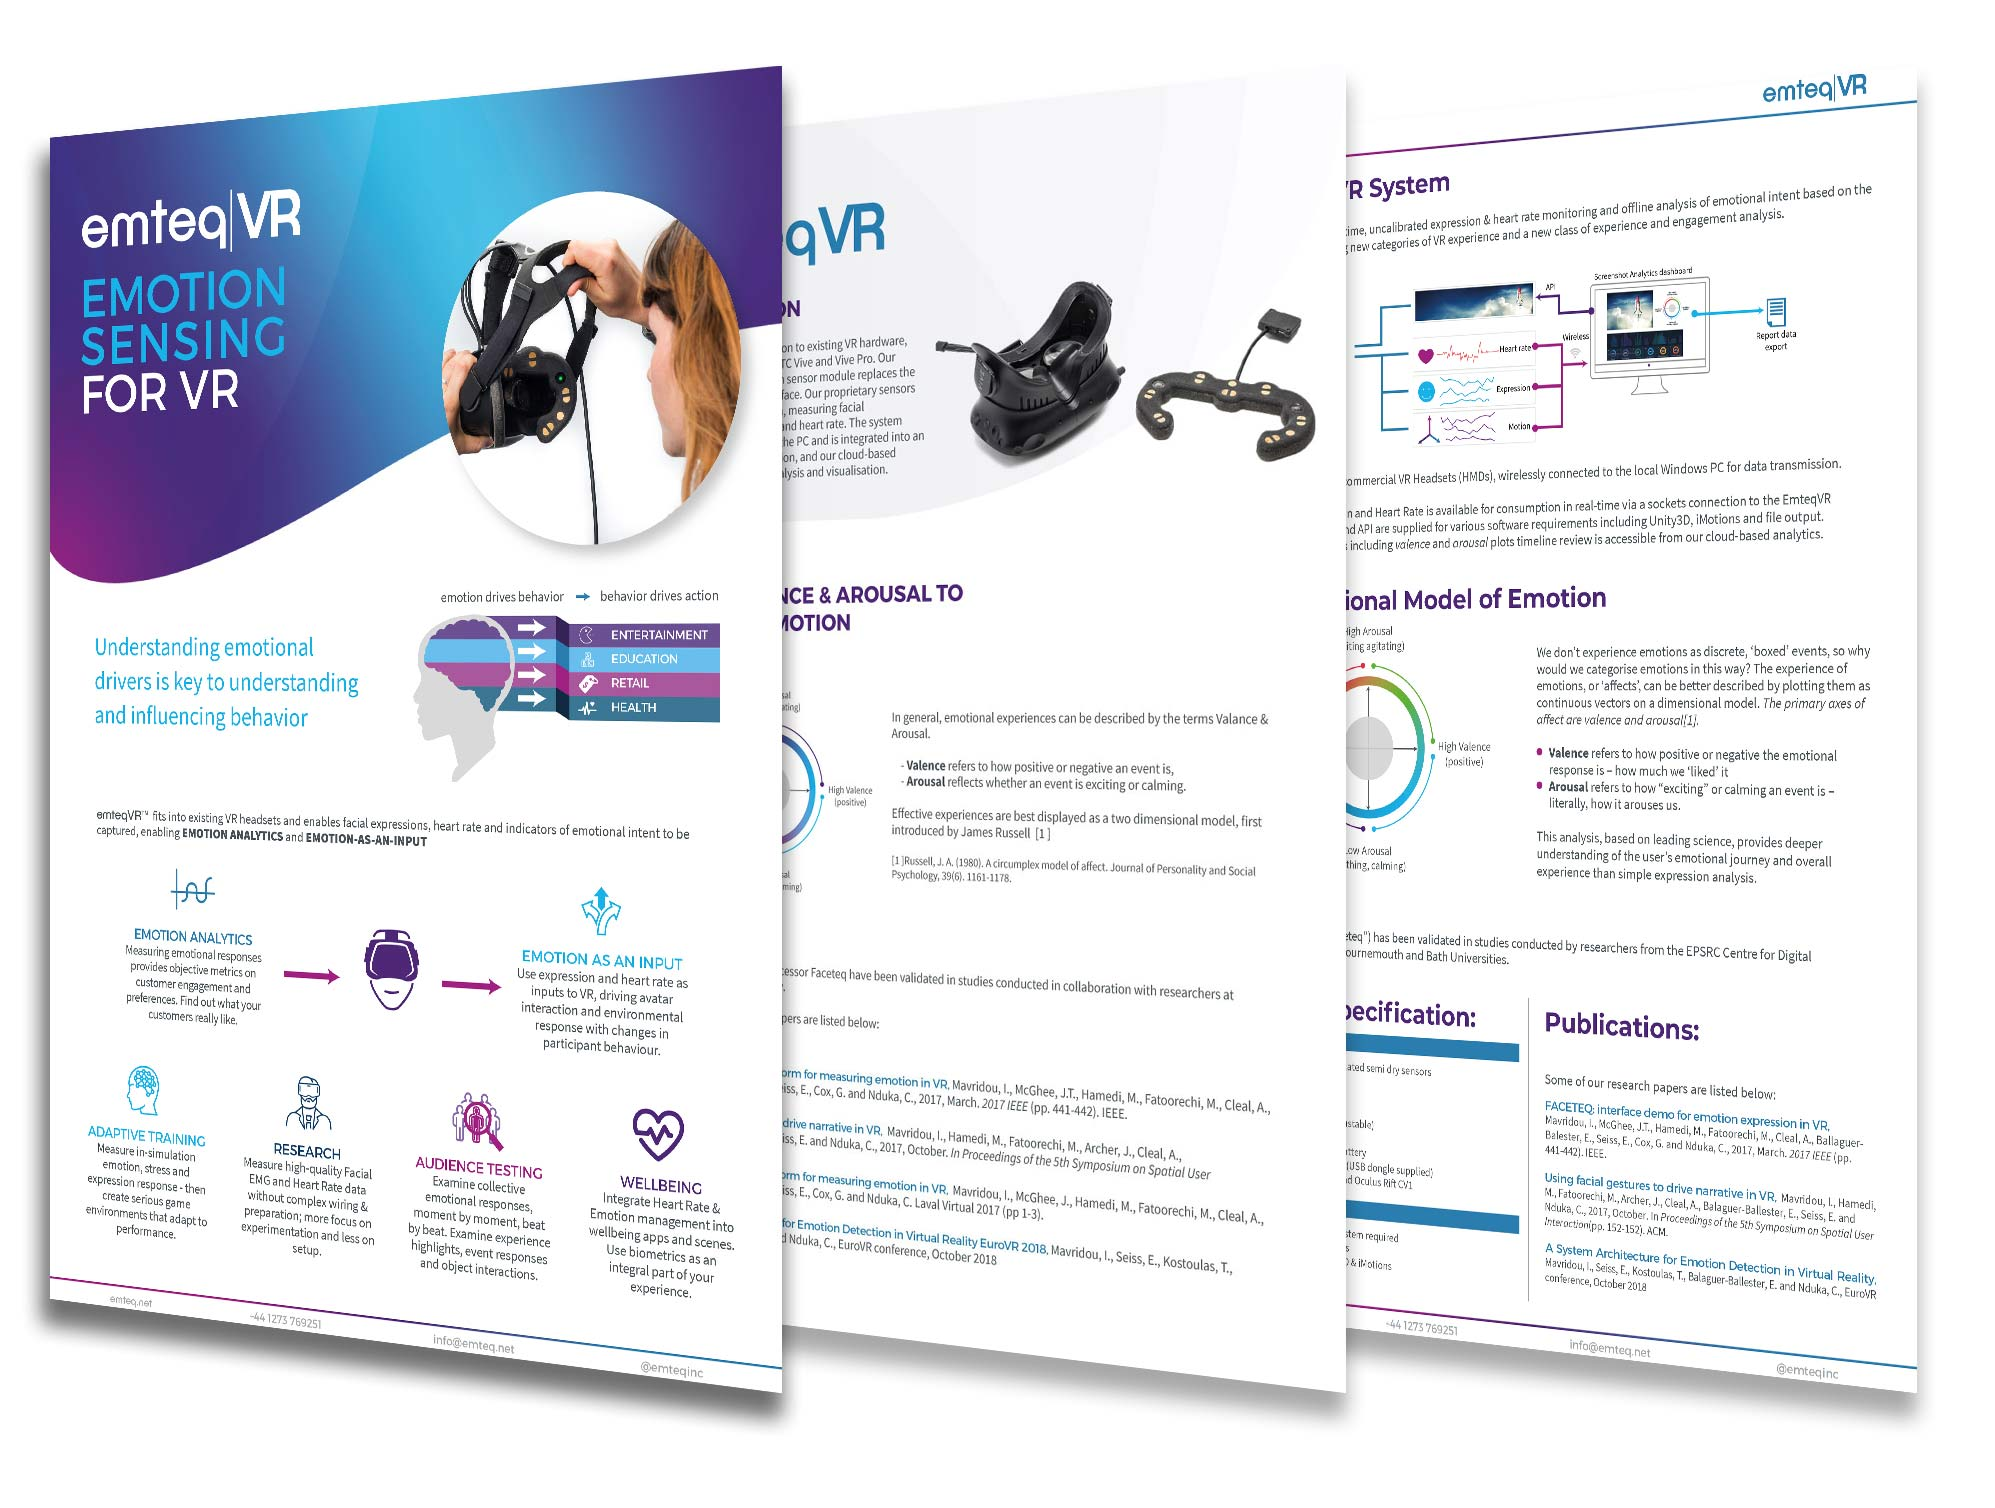 emteq brochure design